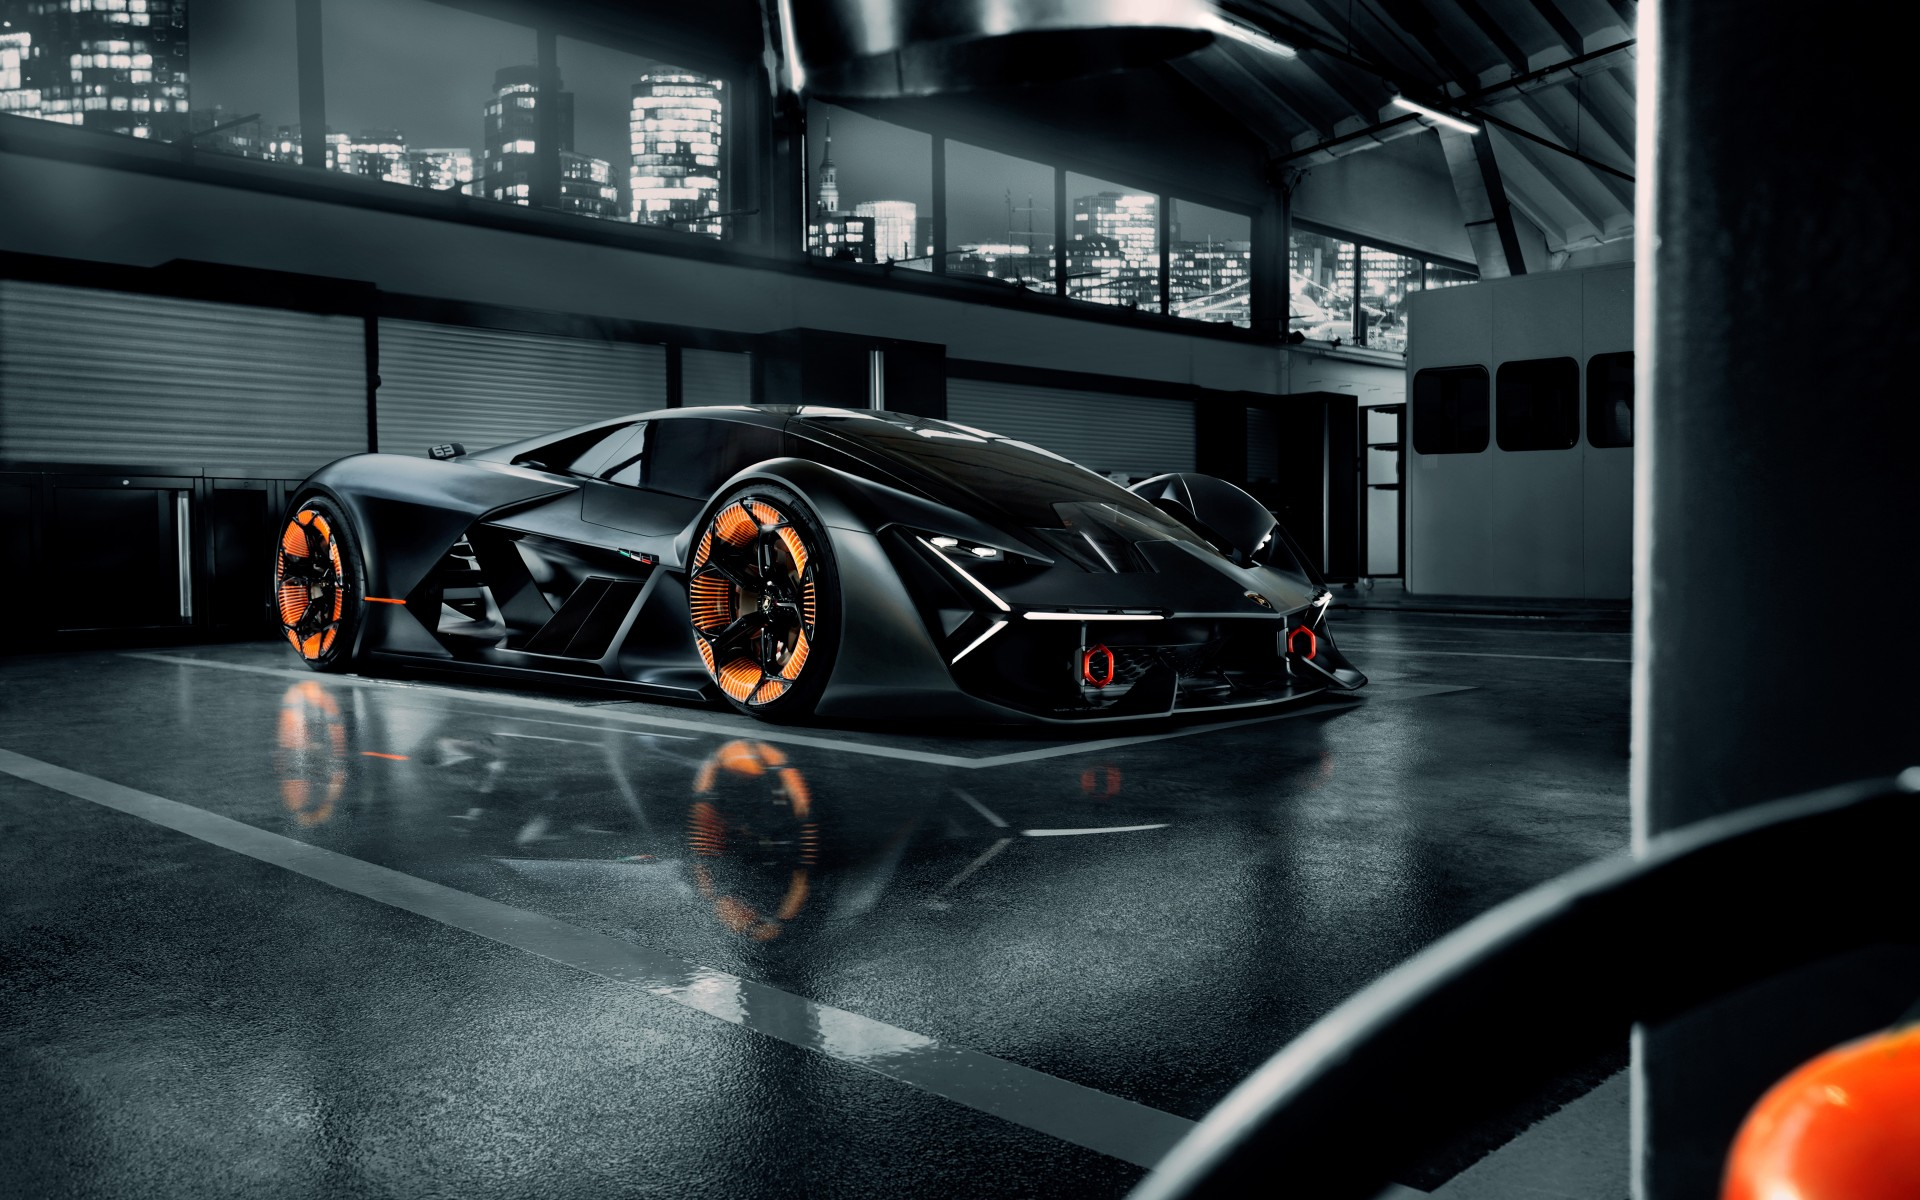 Lamborghini Aventador Cars Wallpapers Lamborghini Terzo Millennio 4k Wallpapers Hd Wallpapers